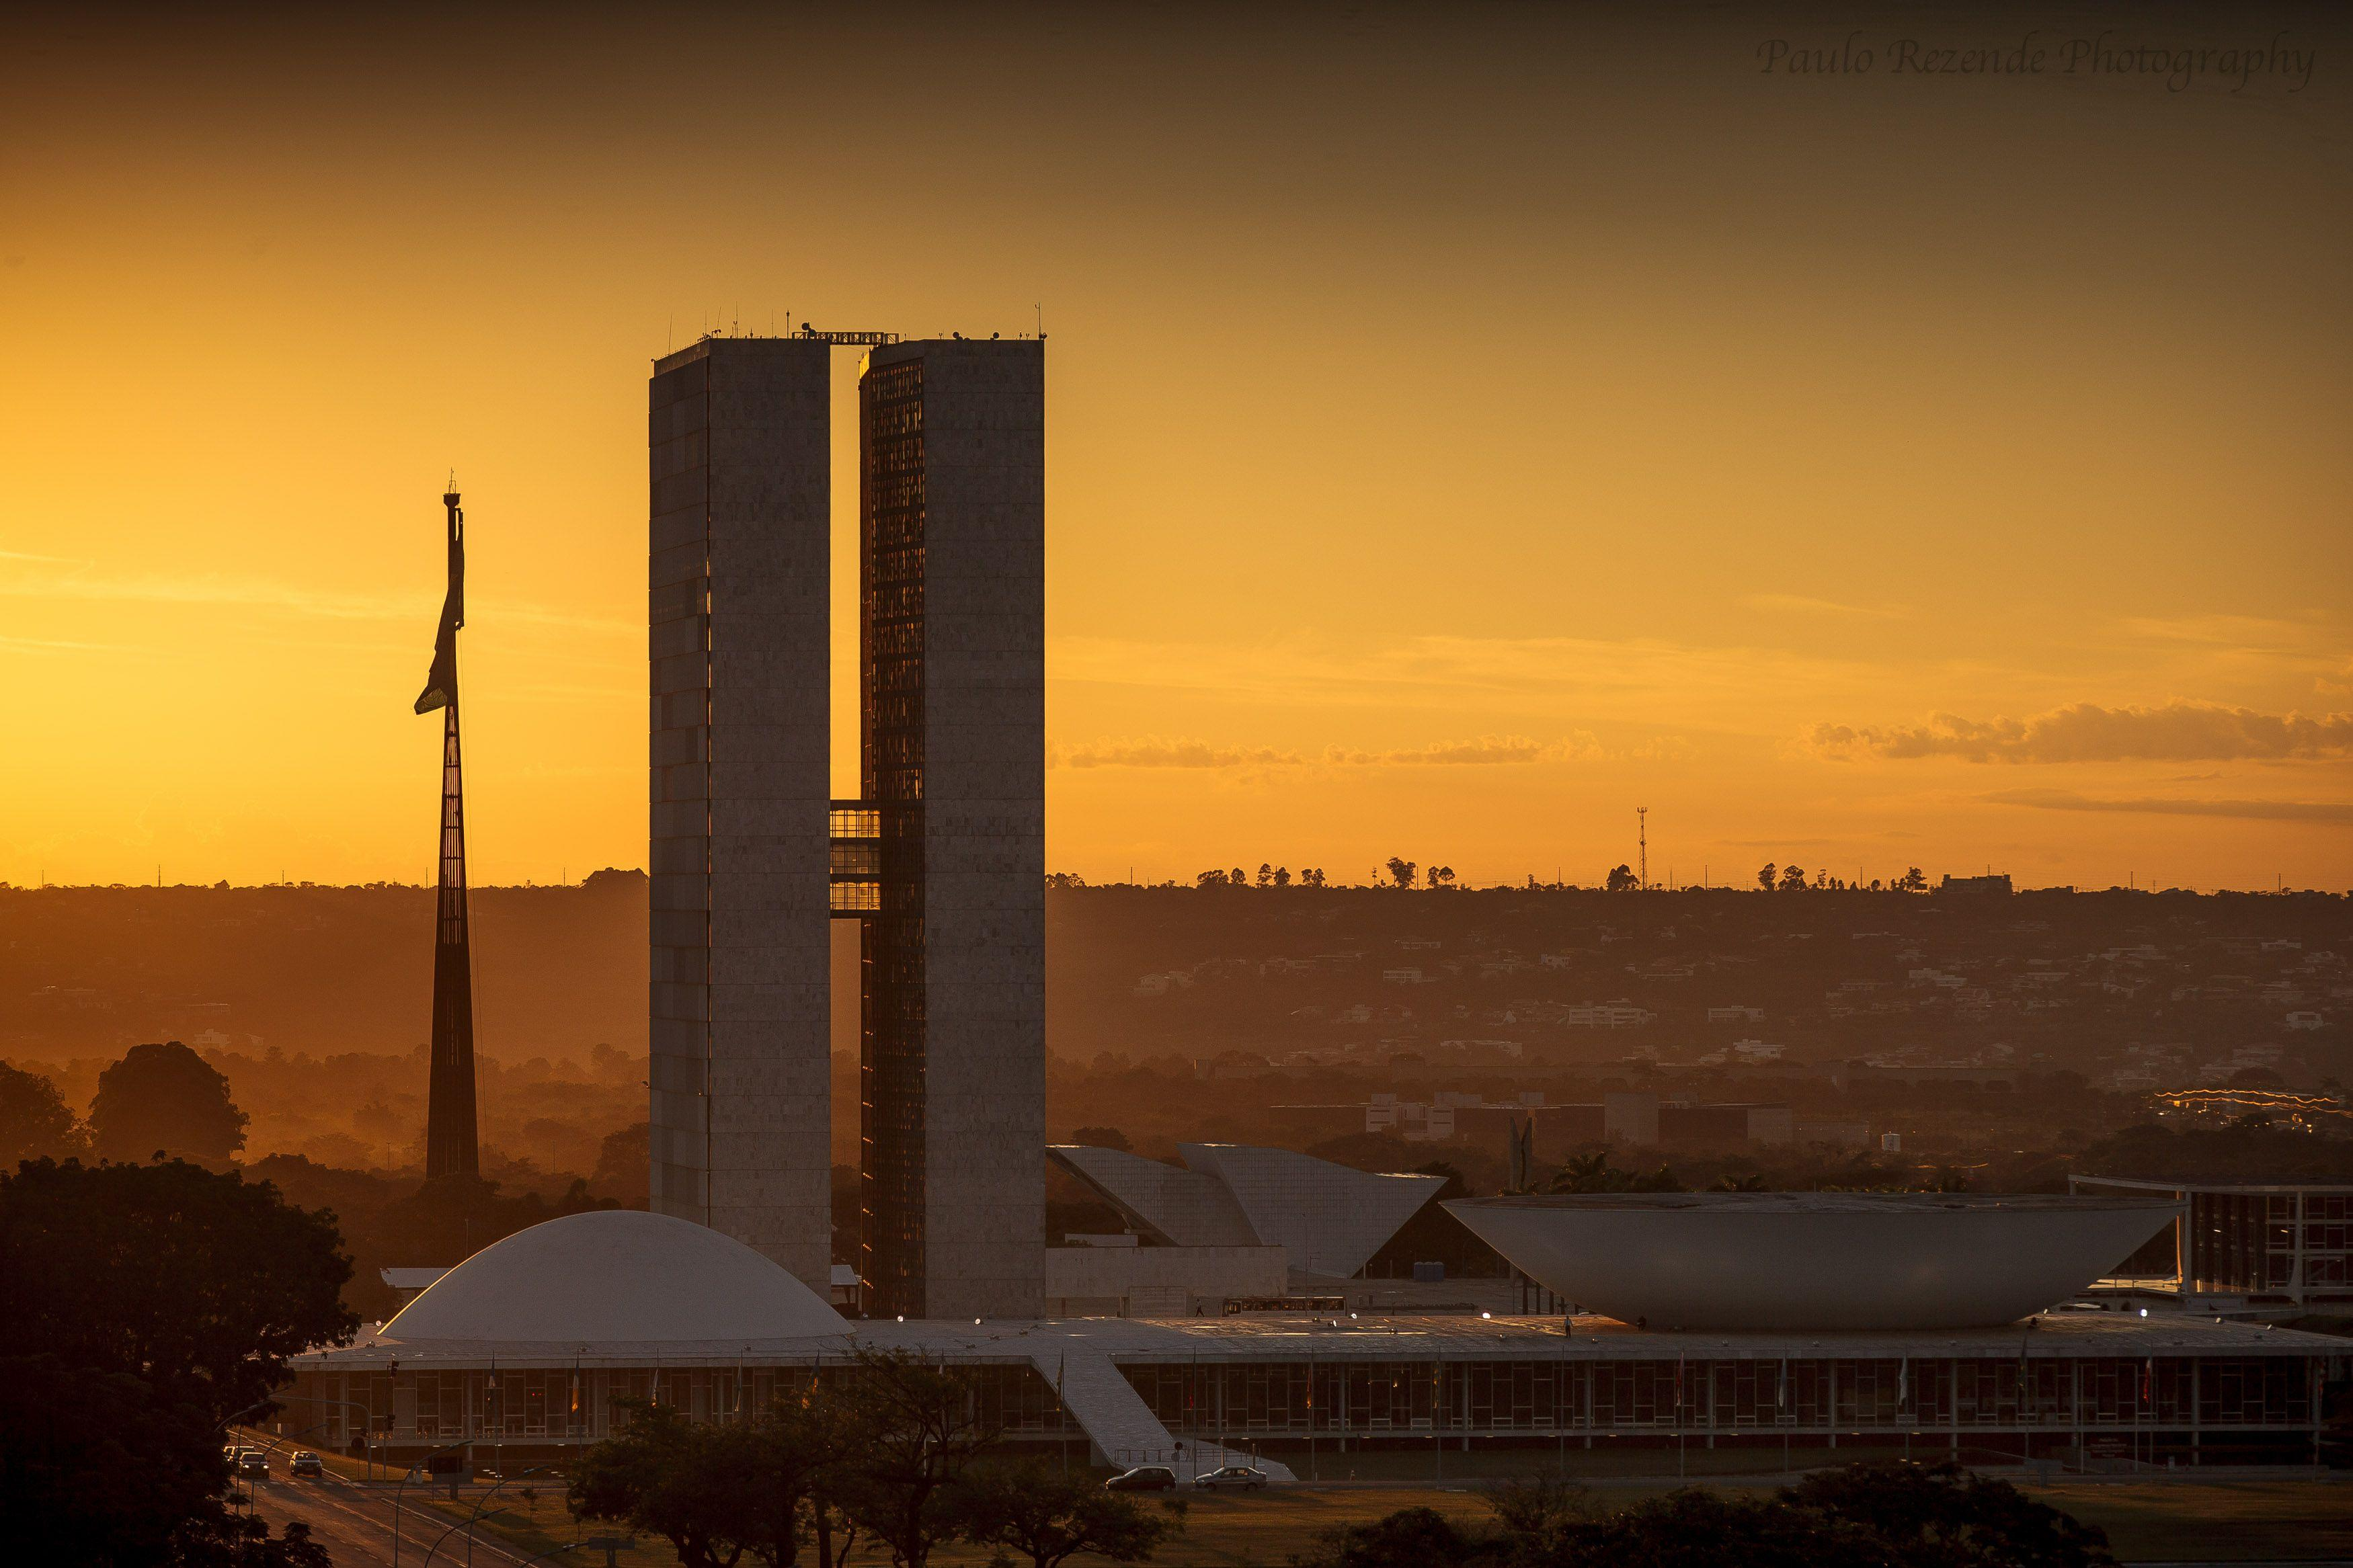 Sunrise in Brasília Full HD Wallpapers and Backgrounds